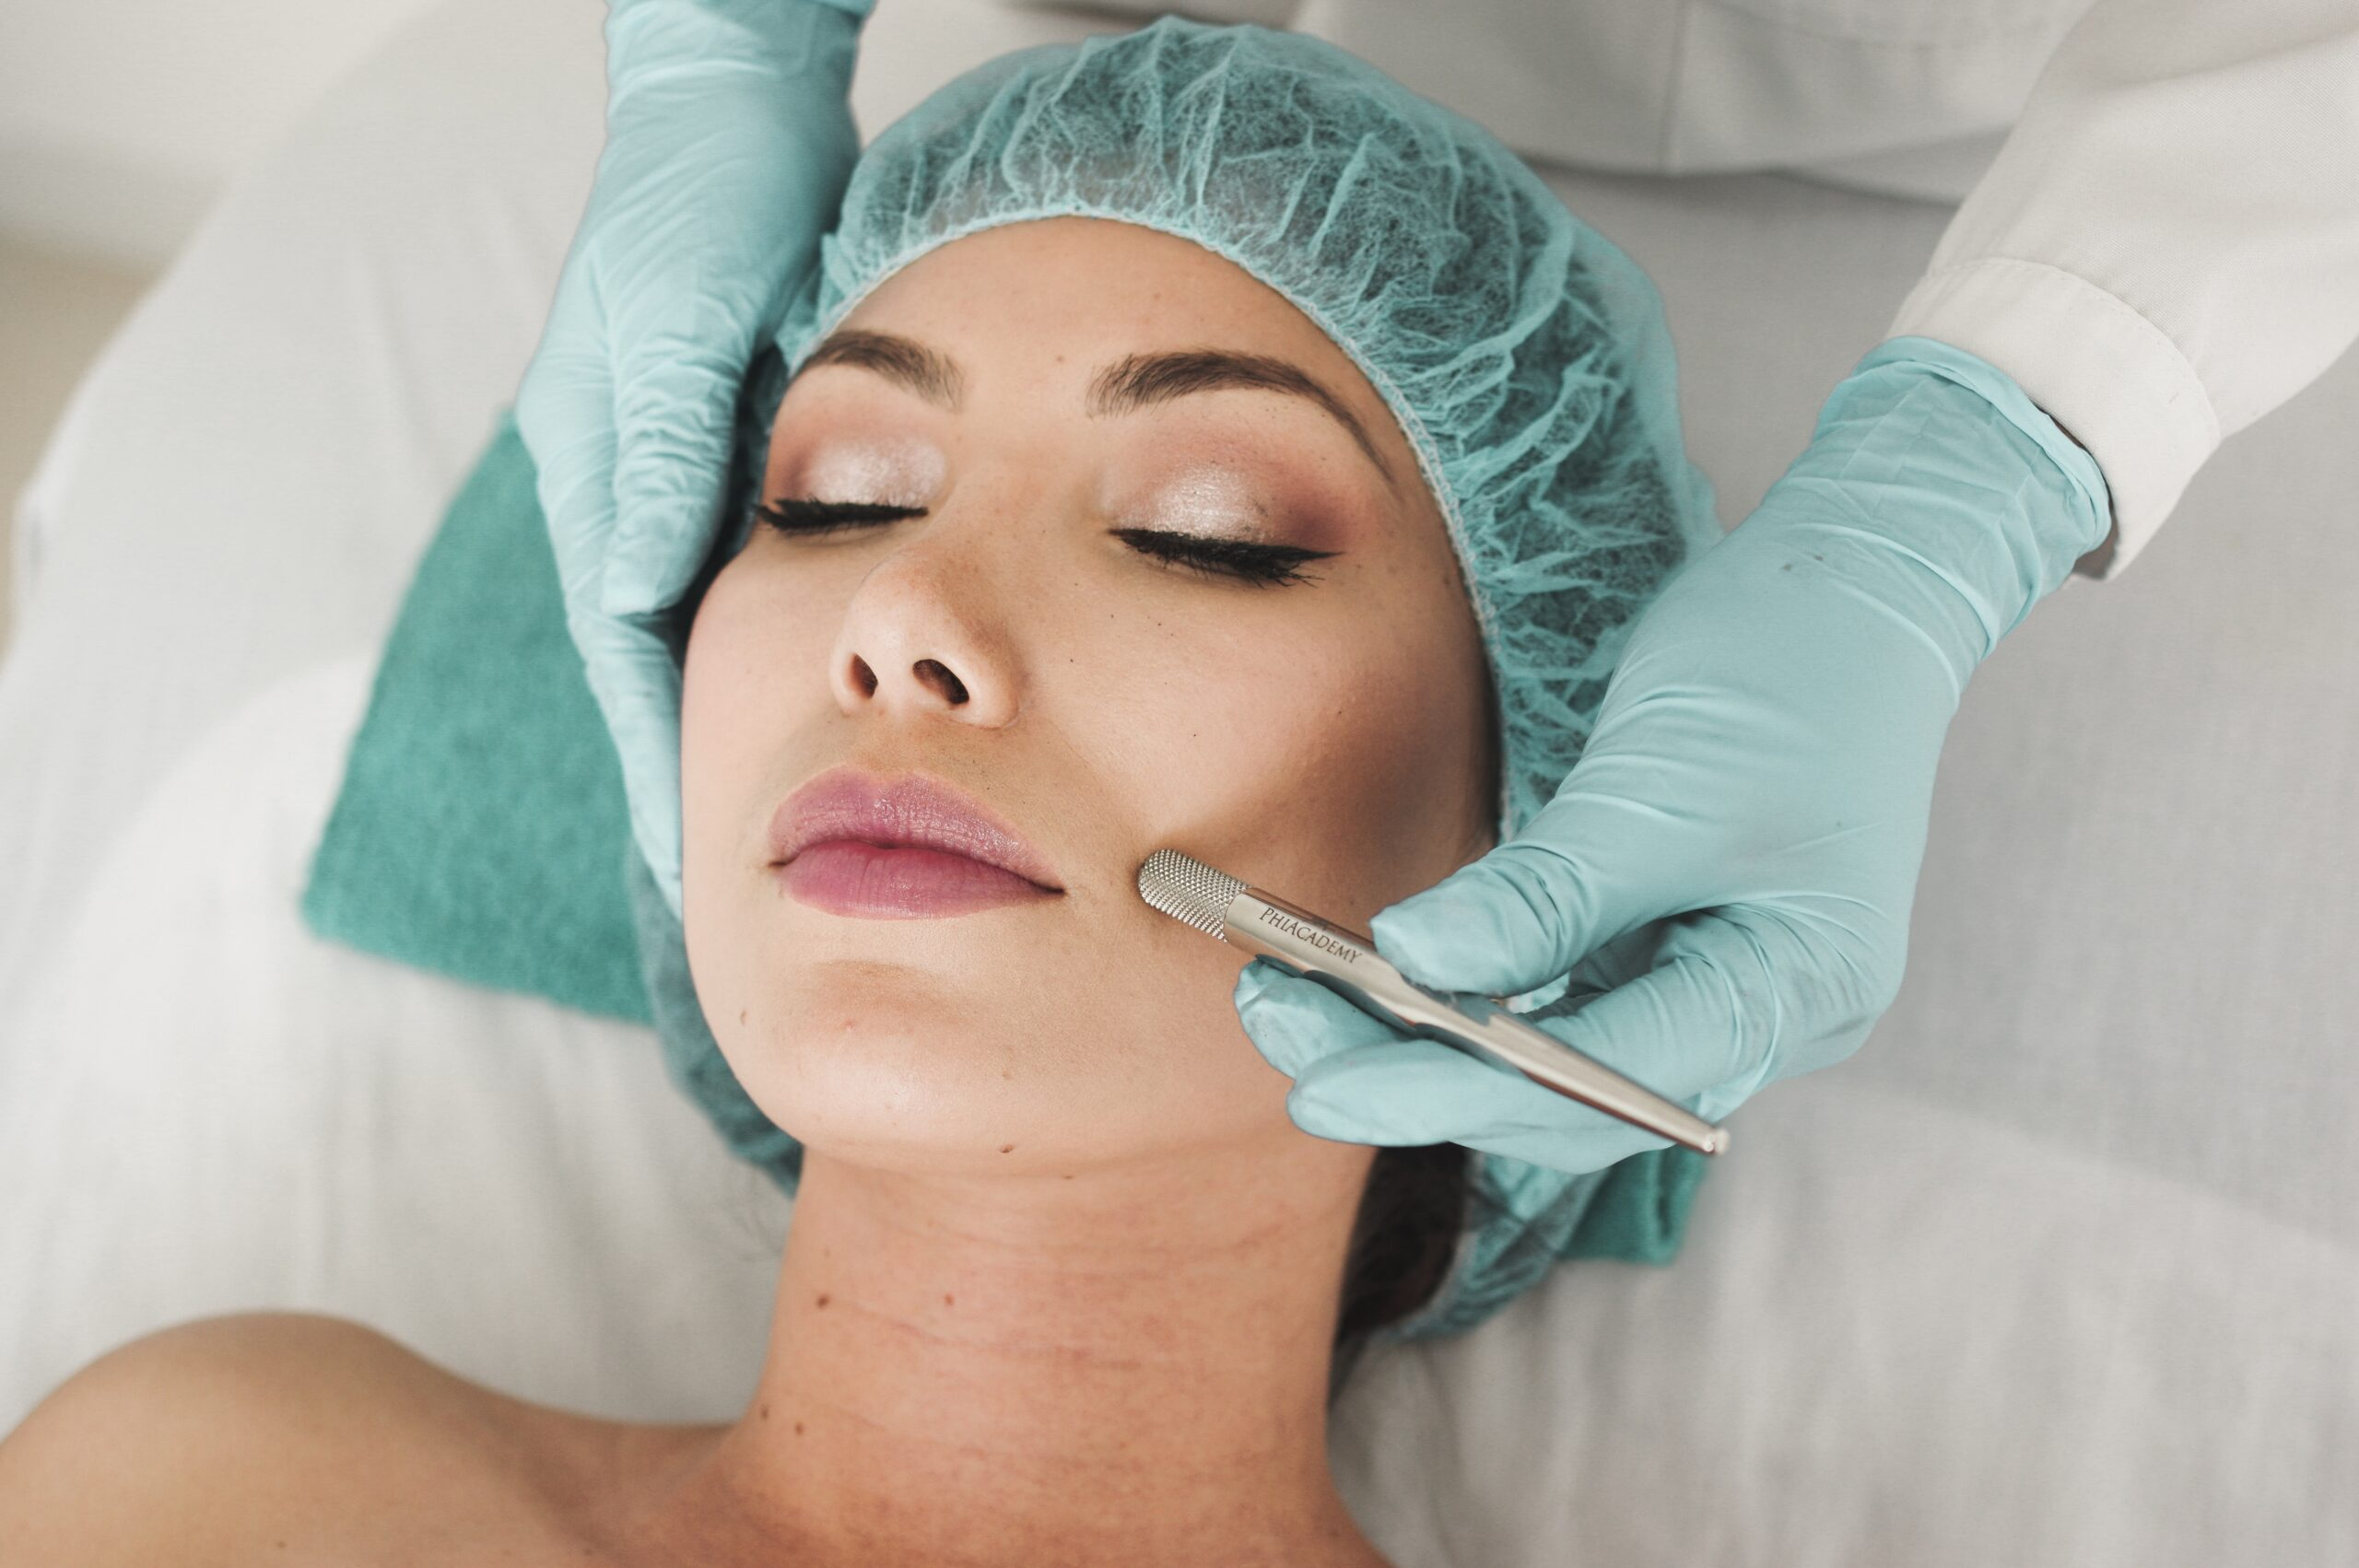 How can I make sure I benefit from getting Cryoskin? Here are the top 5 things to consider.